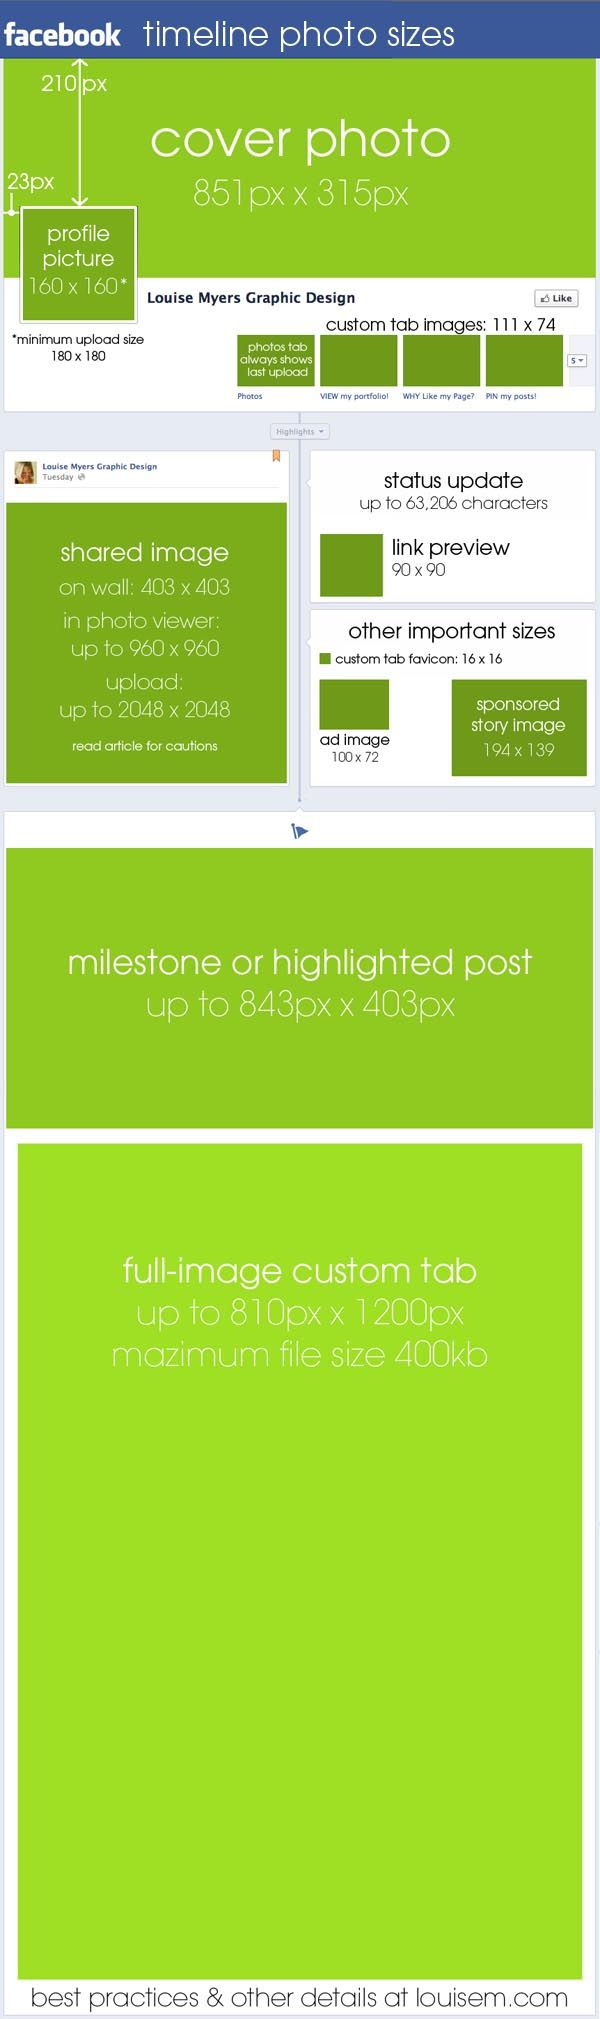 Tired of getting pix-elated images for your business' Facebook page. Now you can use this infographic to find out what is the optimal size for each touch point with your customer. Learn how the Innovation Center can help your business grow:  http://www.rsu.edu/innovation